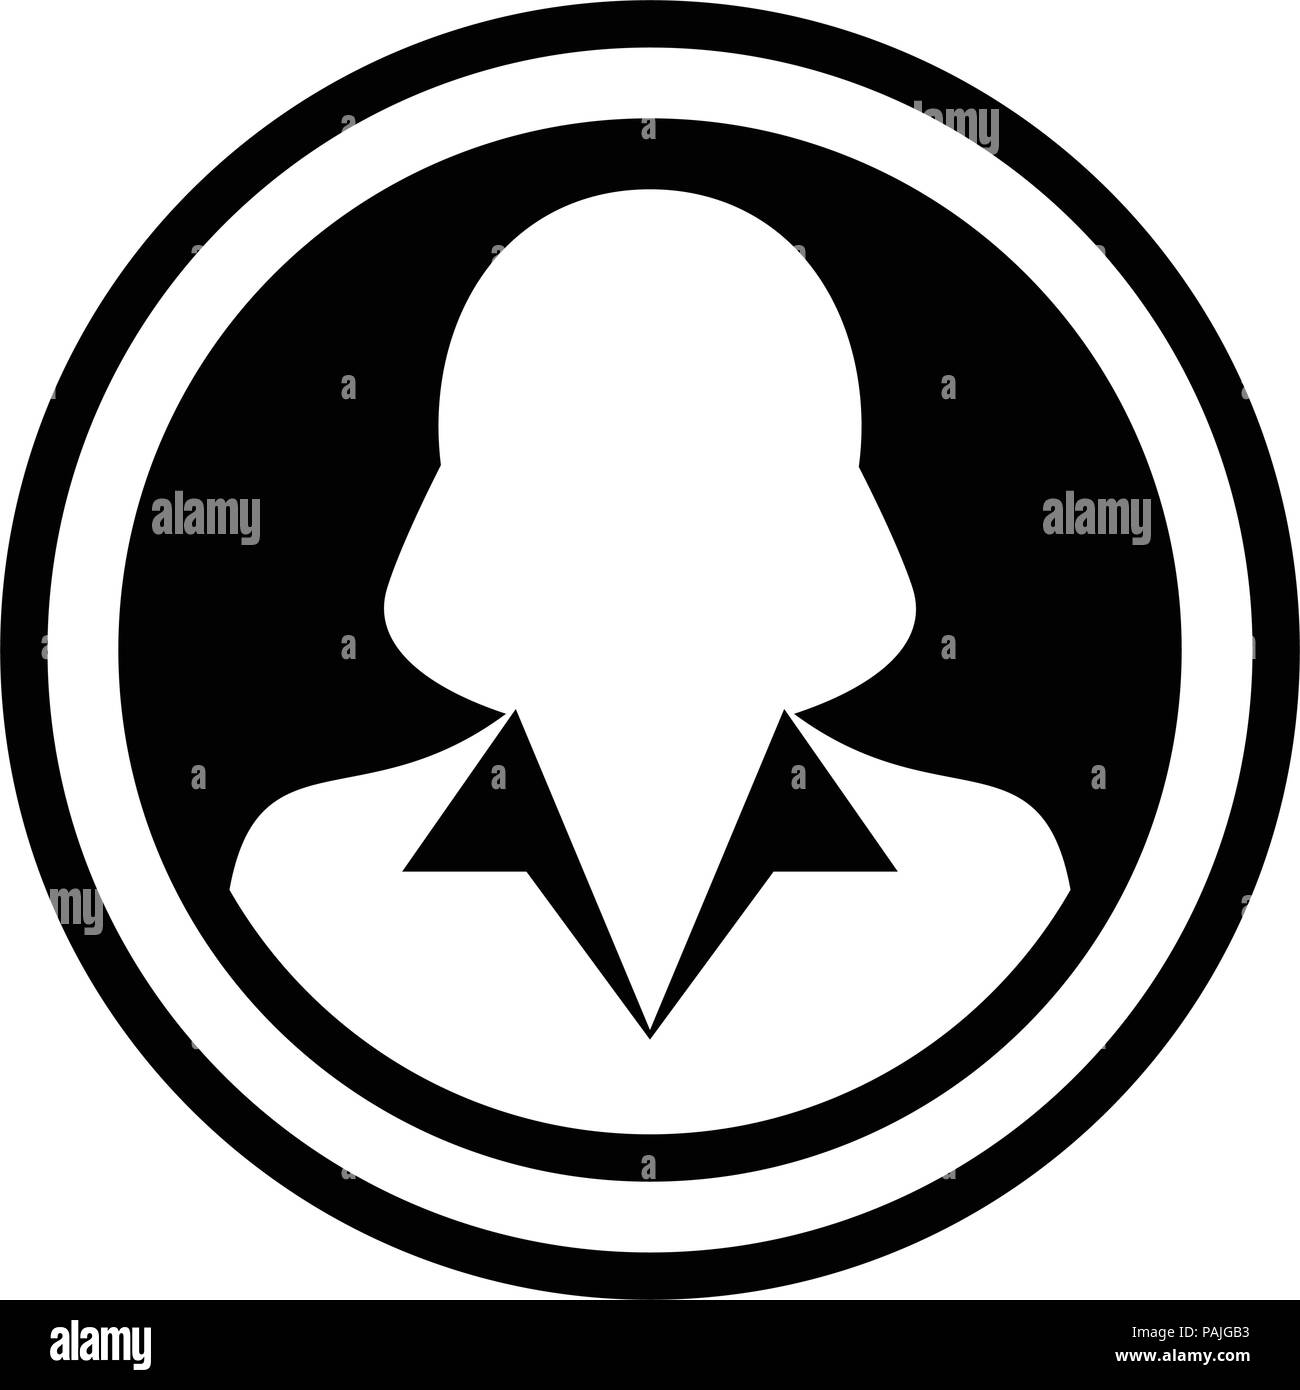 Avatar icon vector female person symbol circle user profile avatar sign in flat color glyph pictogram illustration - Stock Image